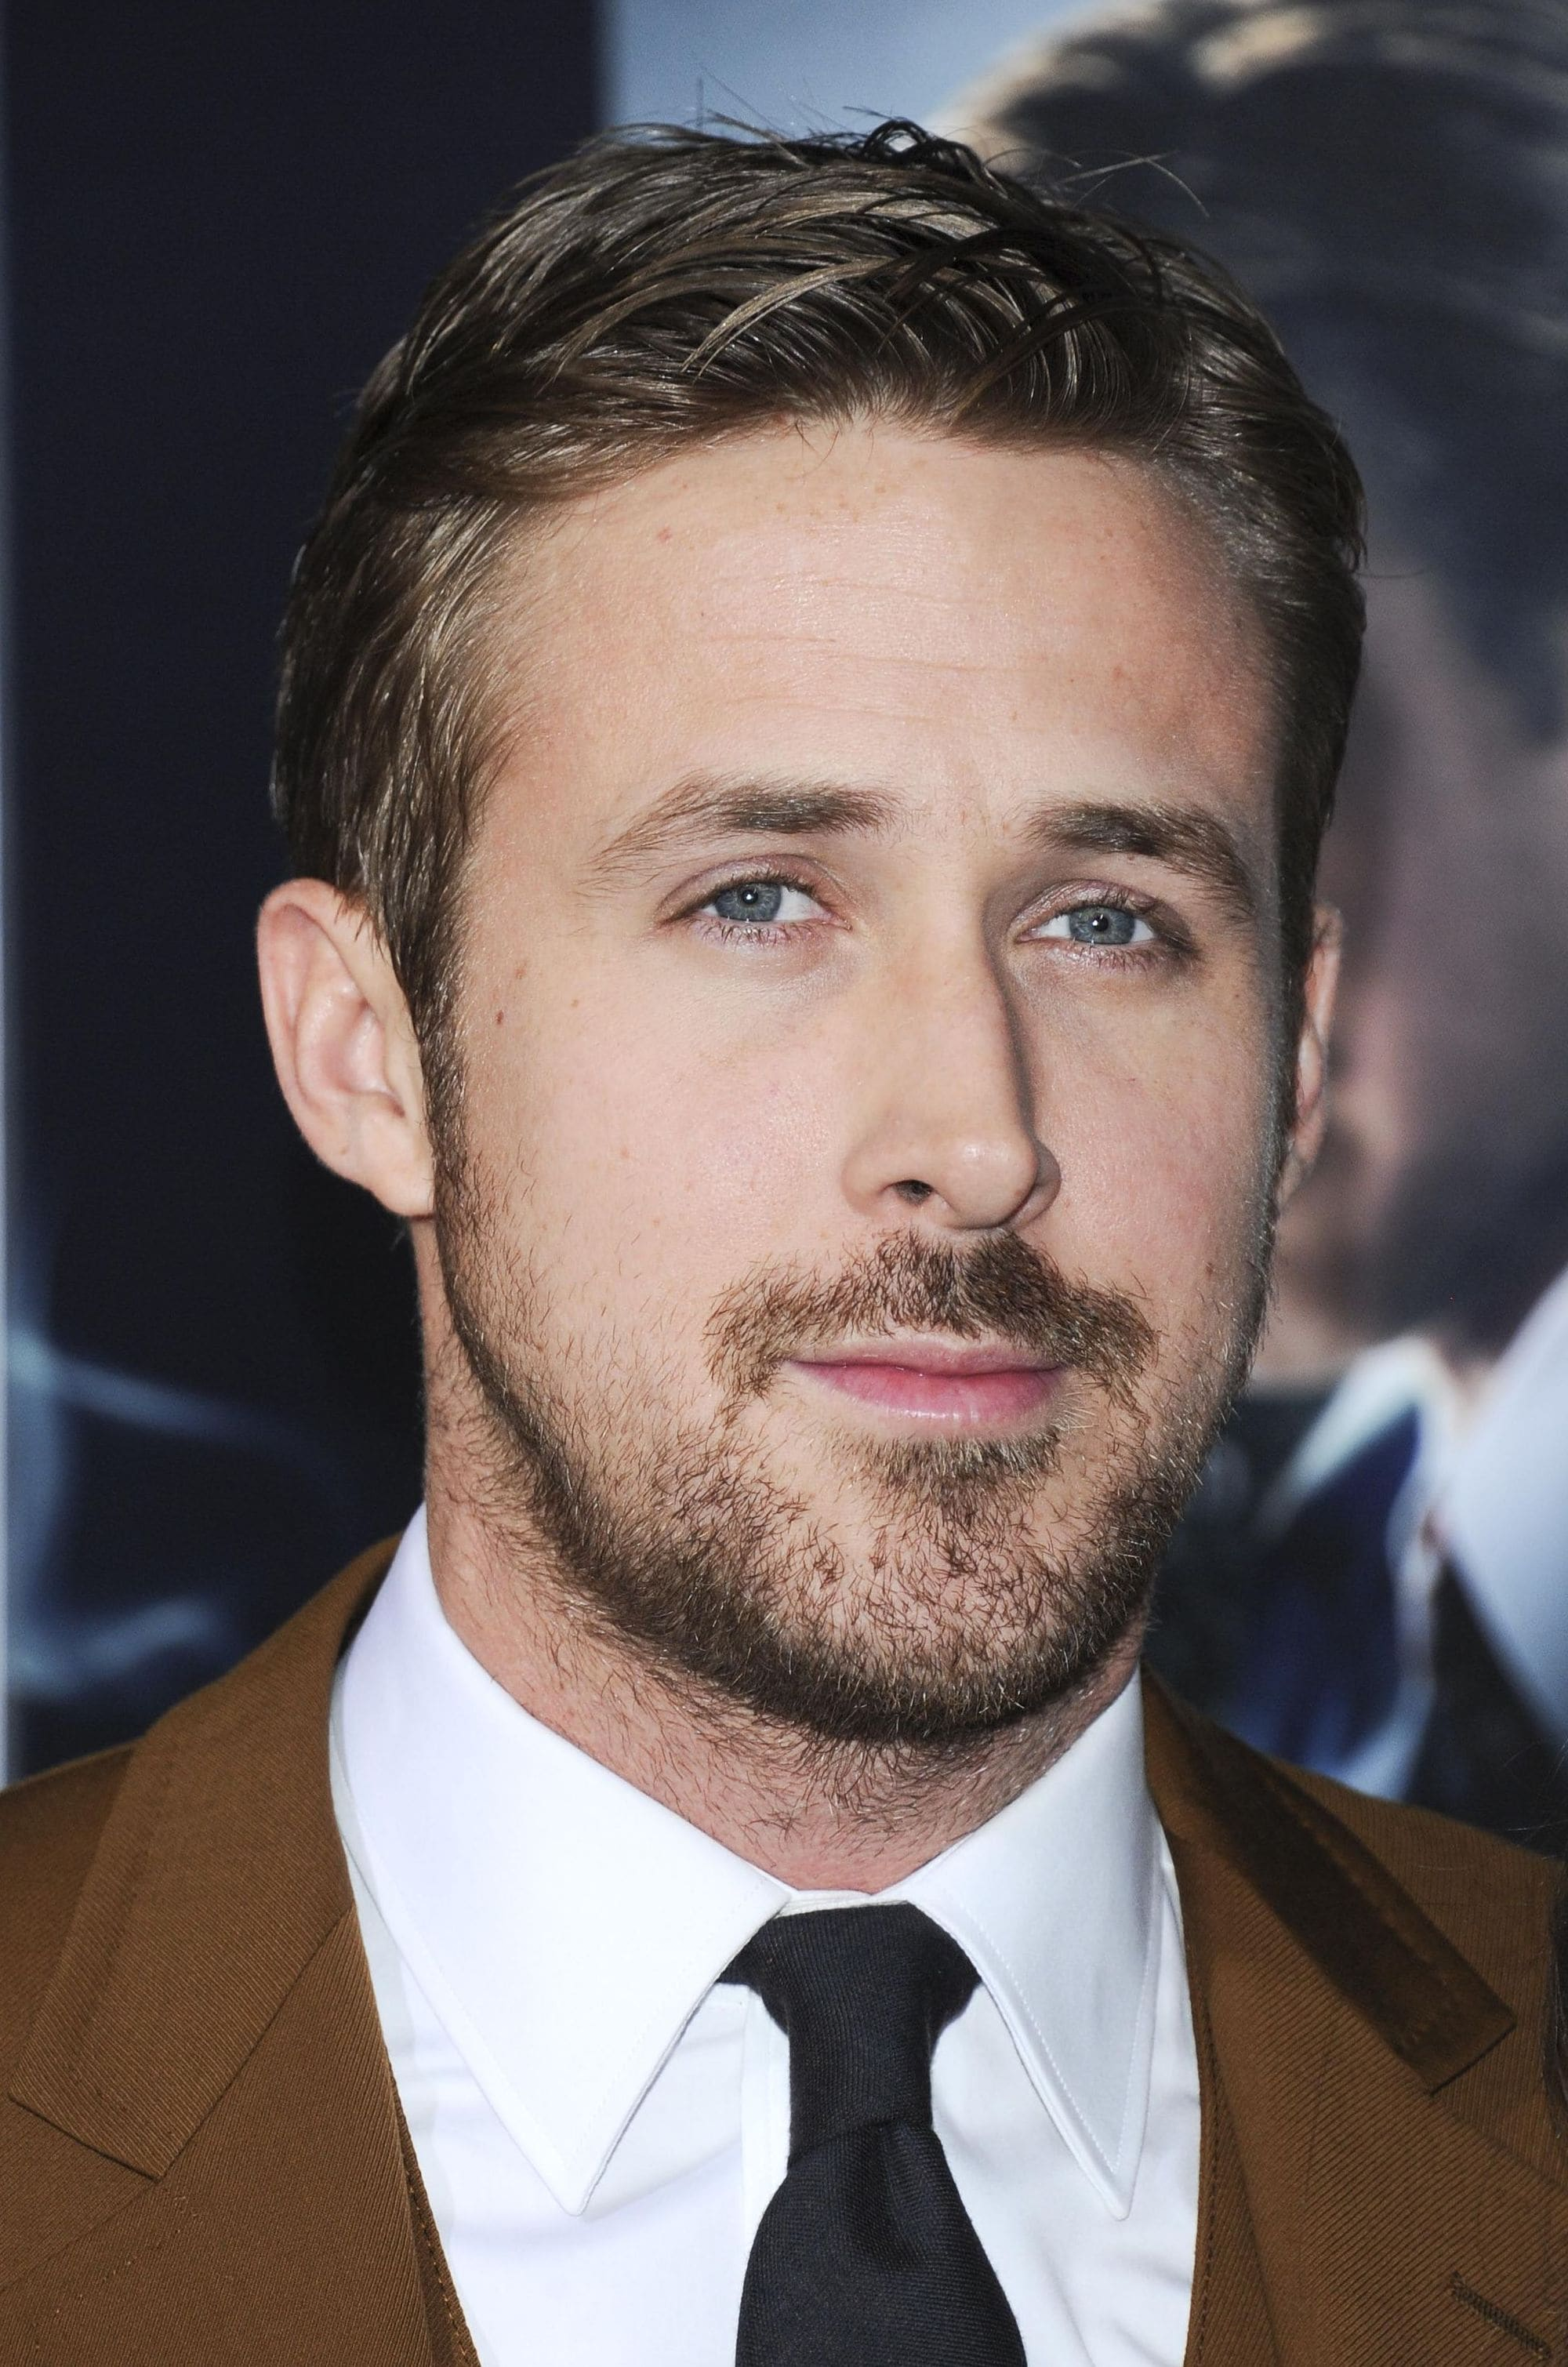 Ryan Gosling haircut: Ryan Gosling with brown hair in a side parting